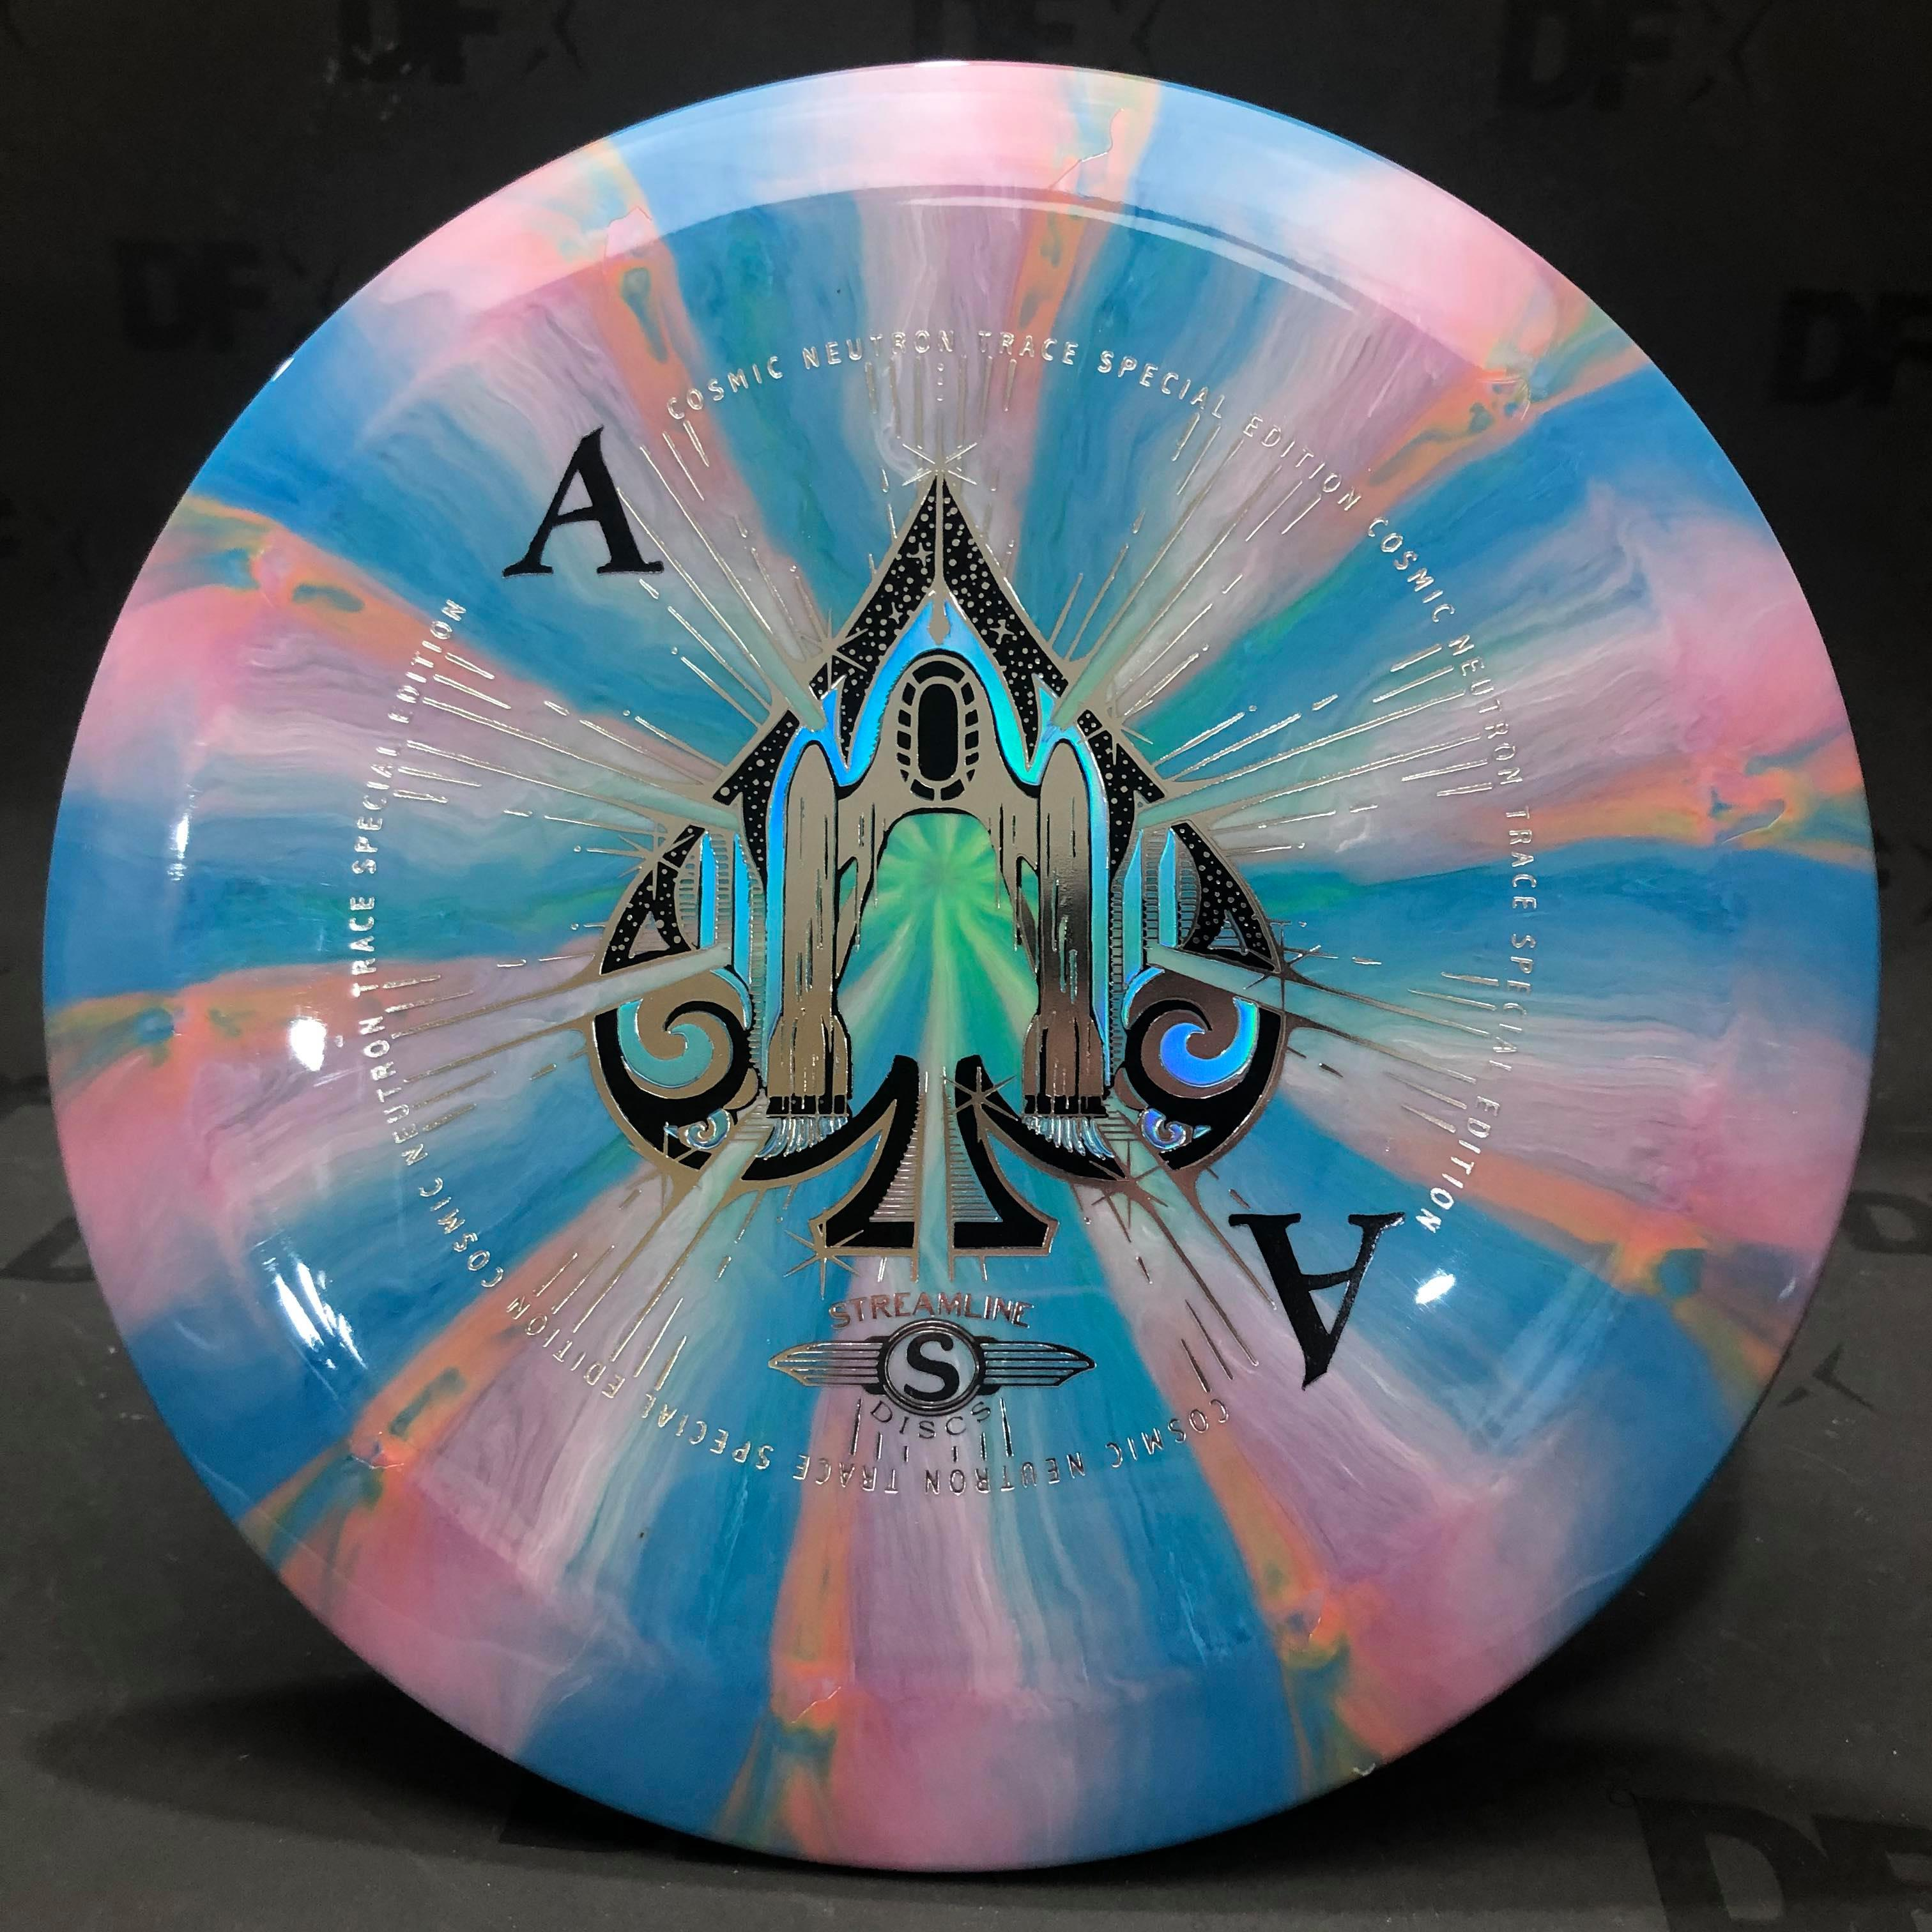 Streamline Cosmic Neutron Trace - Ace of Spades Special Edition